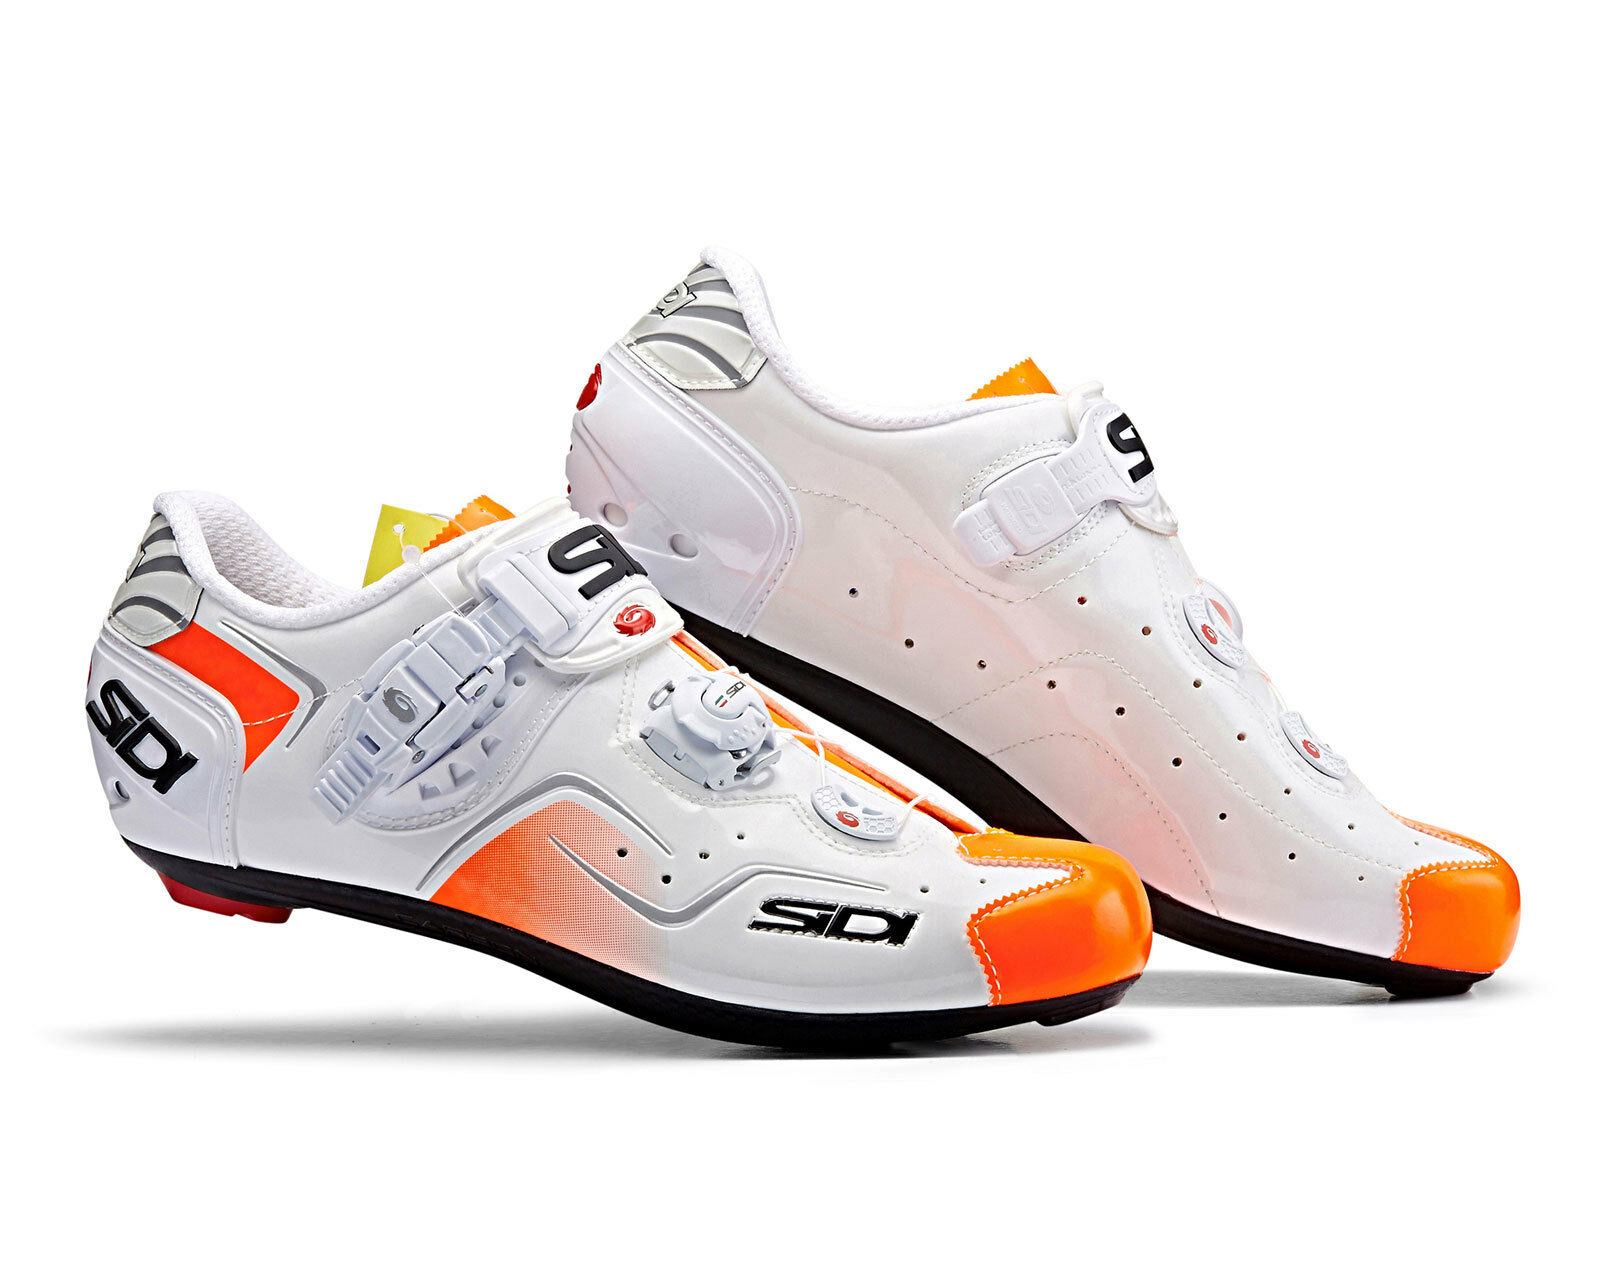 SIDI KAOS Road Cycling shoes  - White orange Fluo  preferential